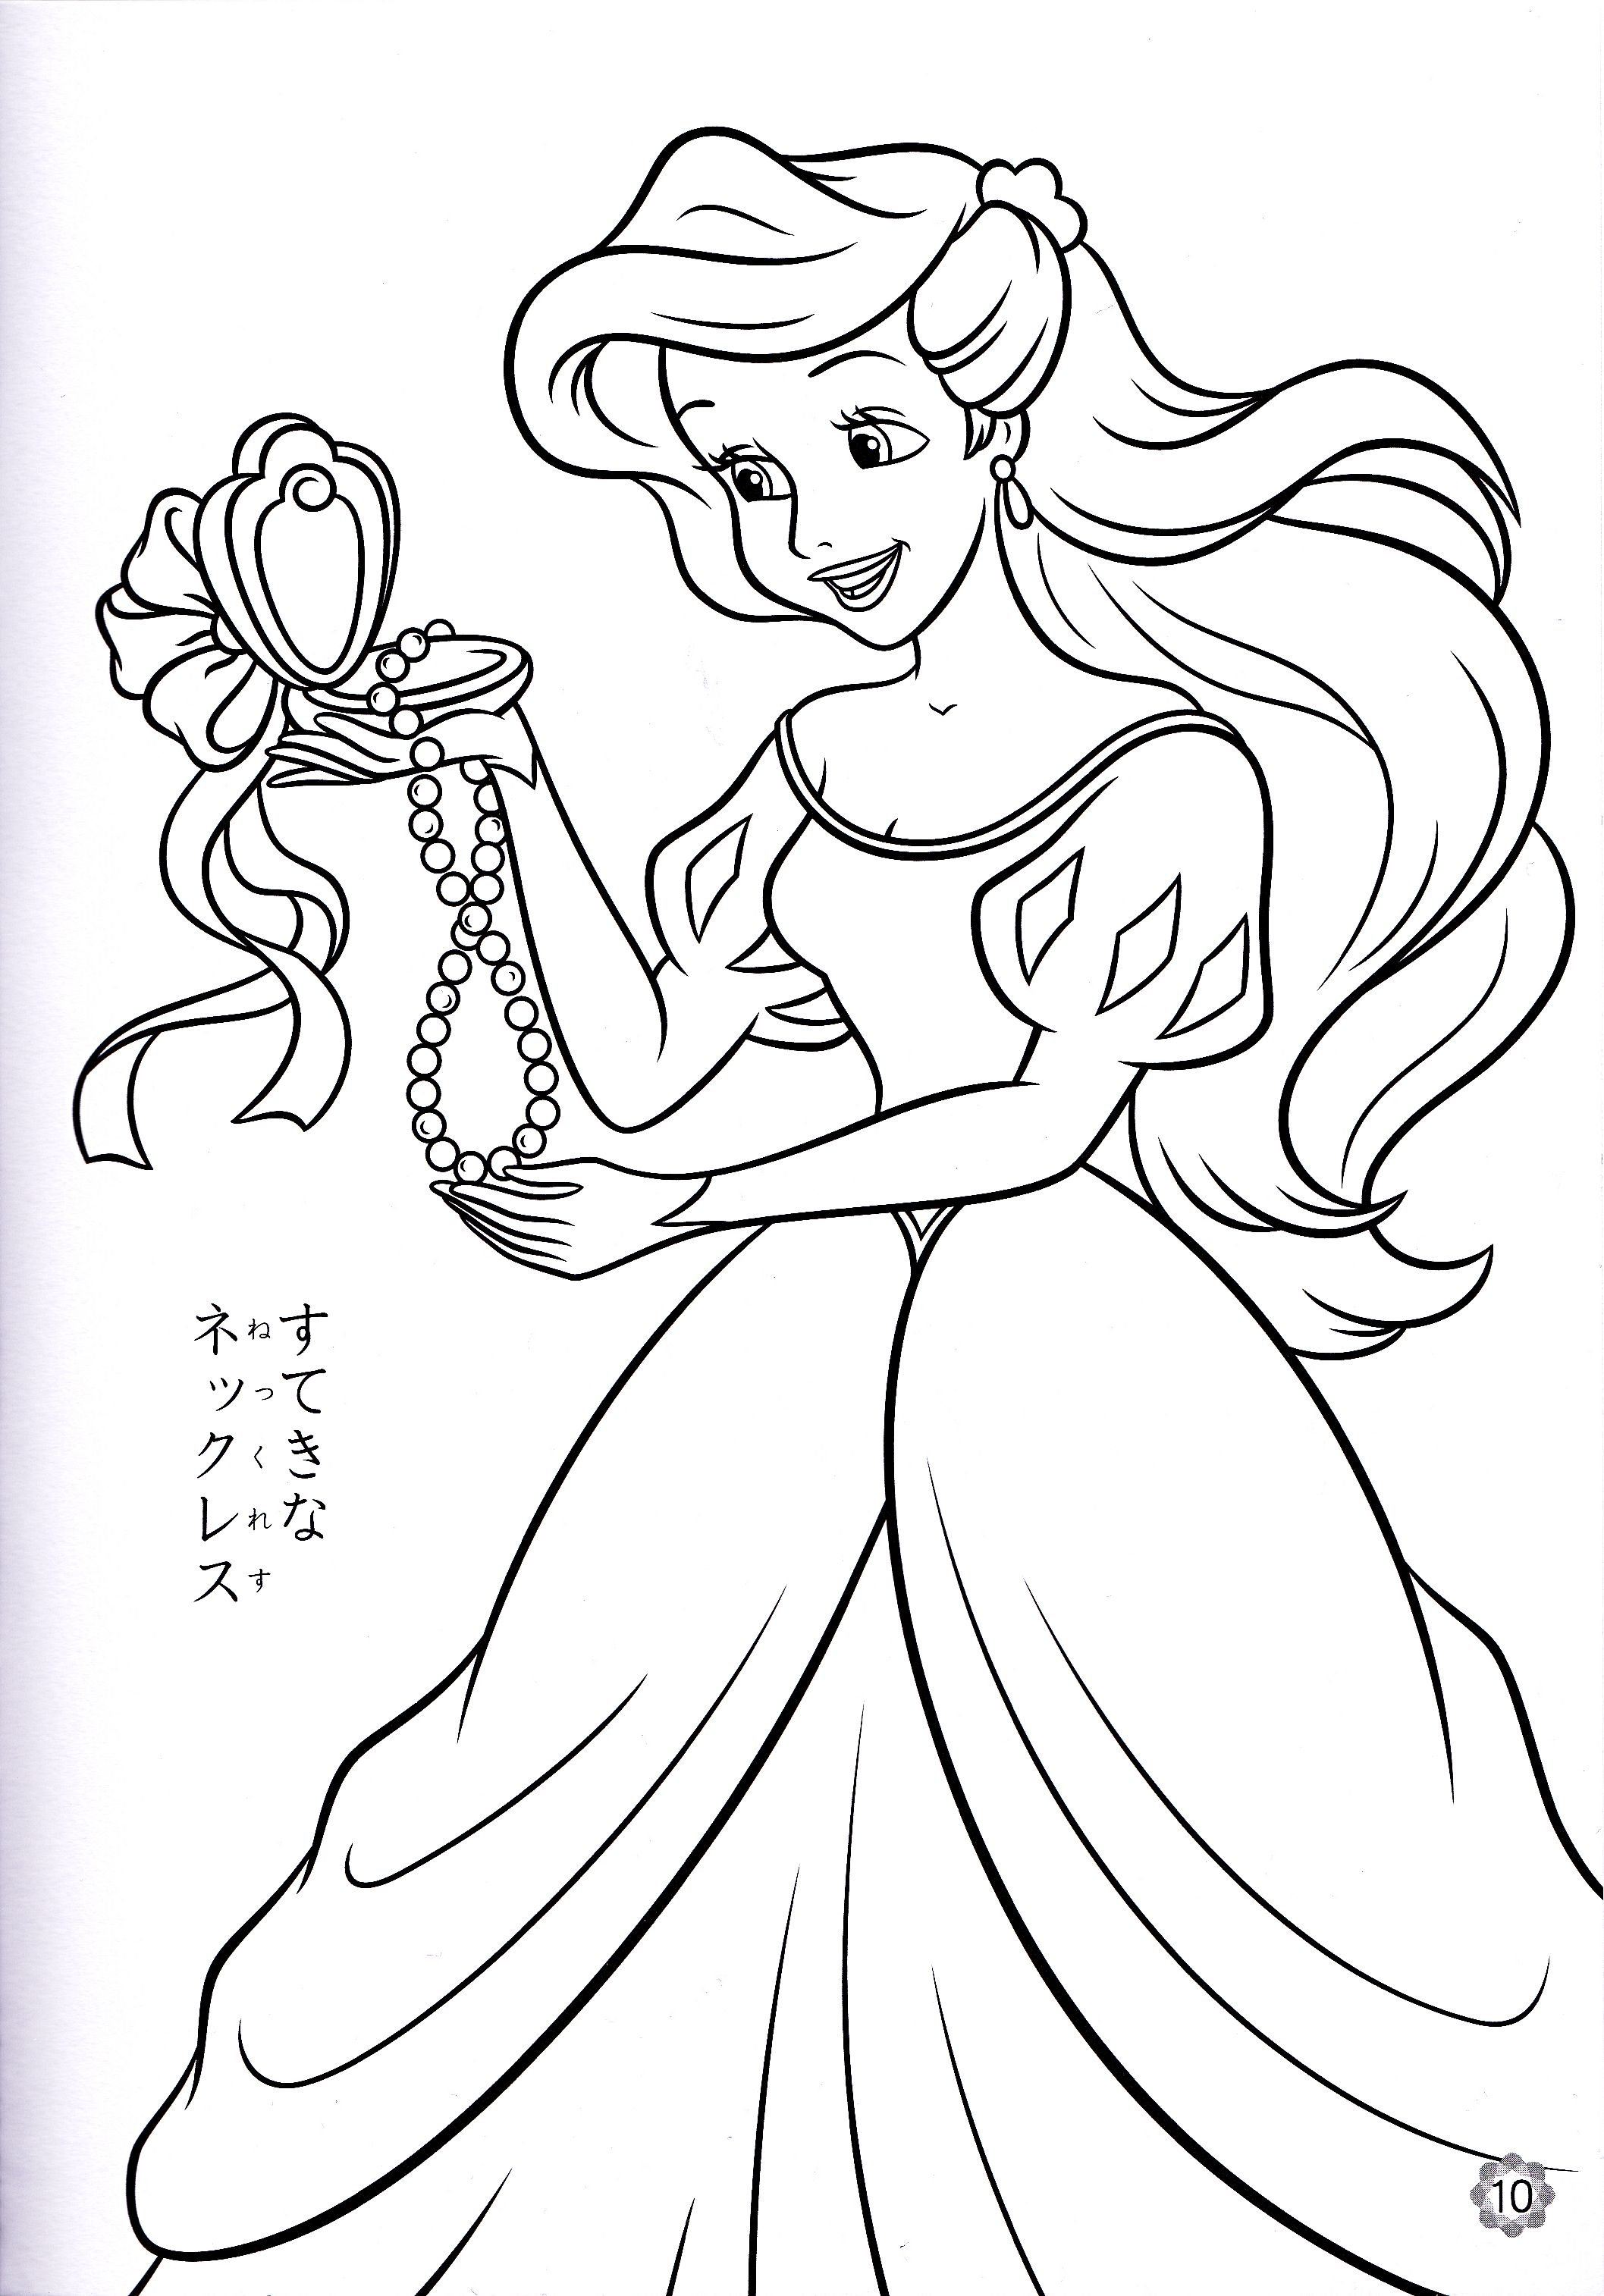 The Little Mermaid coloring page | coloring | Pinterest | Princess ...